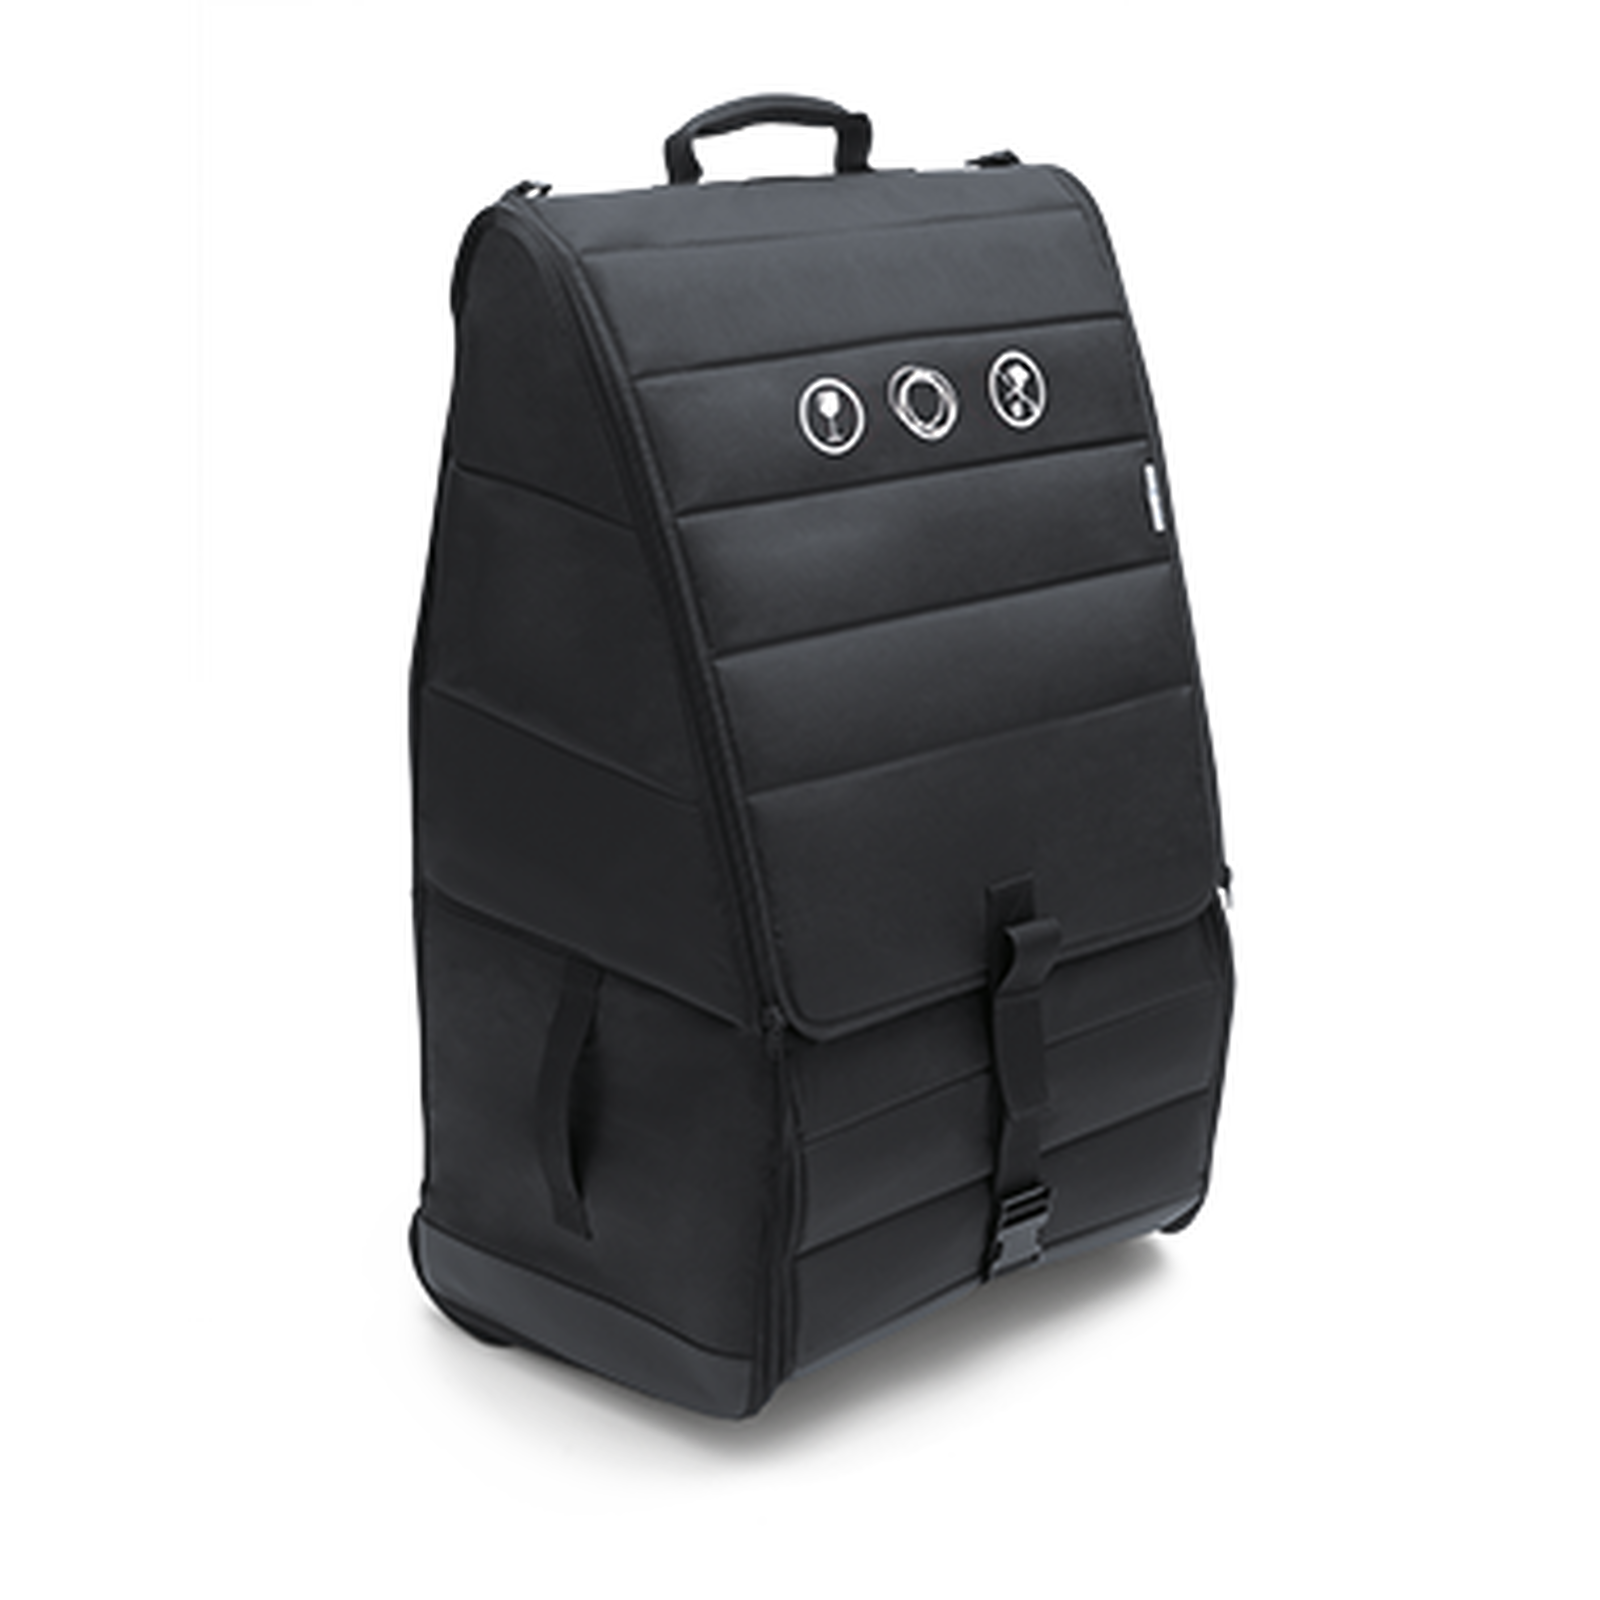 Bugaboo comfort transport bag Black